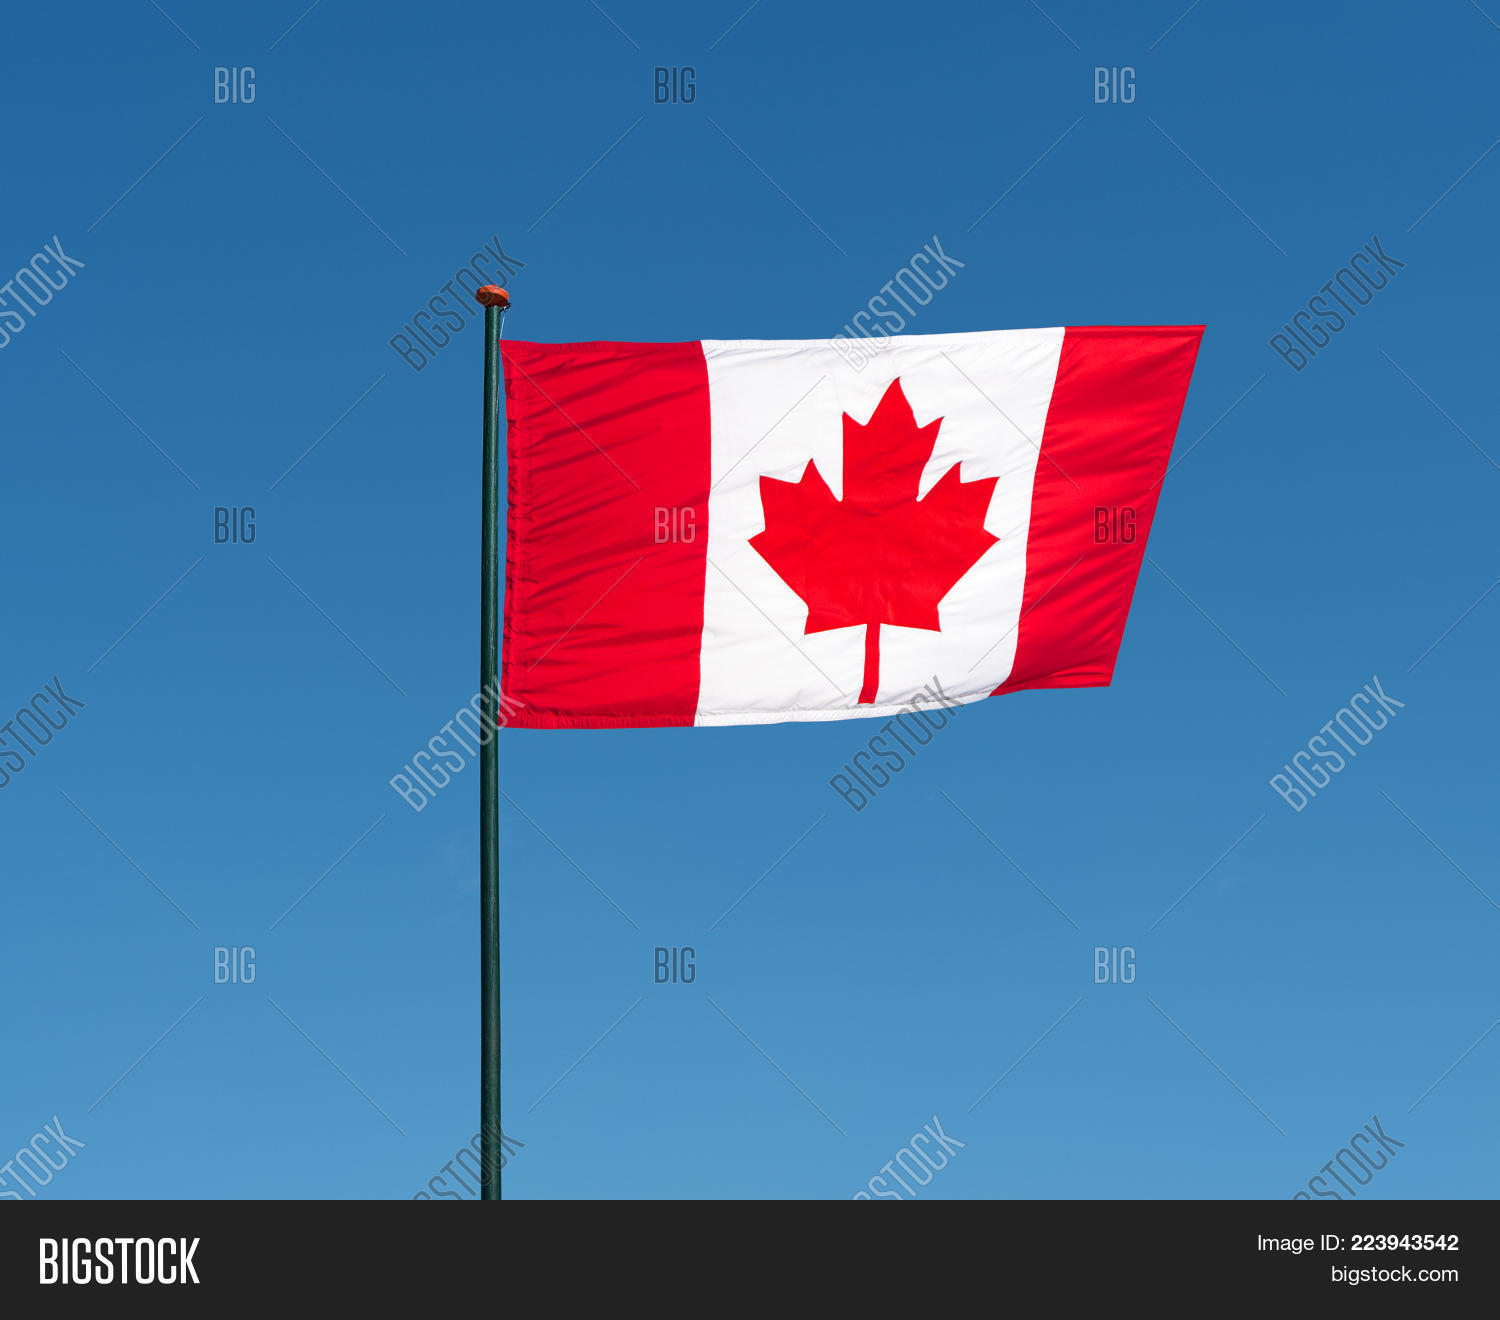 Canadian National Image Photo Free Trial Bigstock